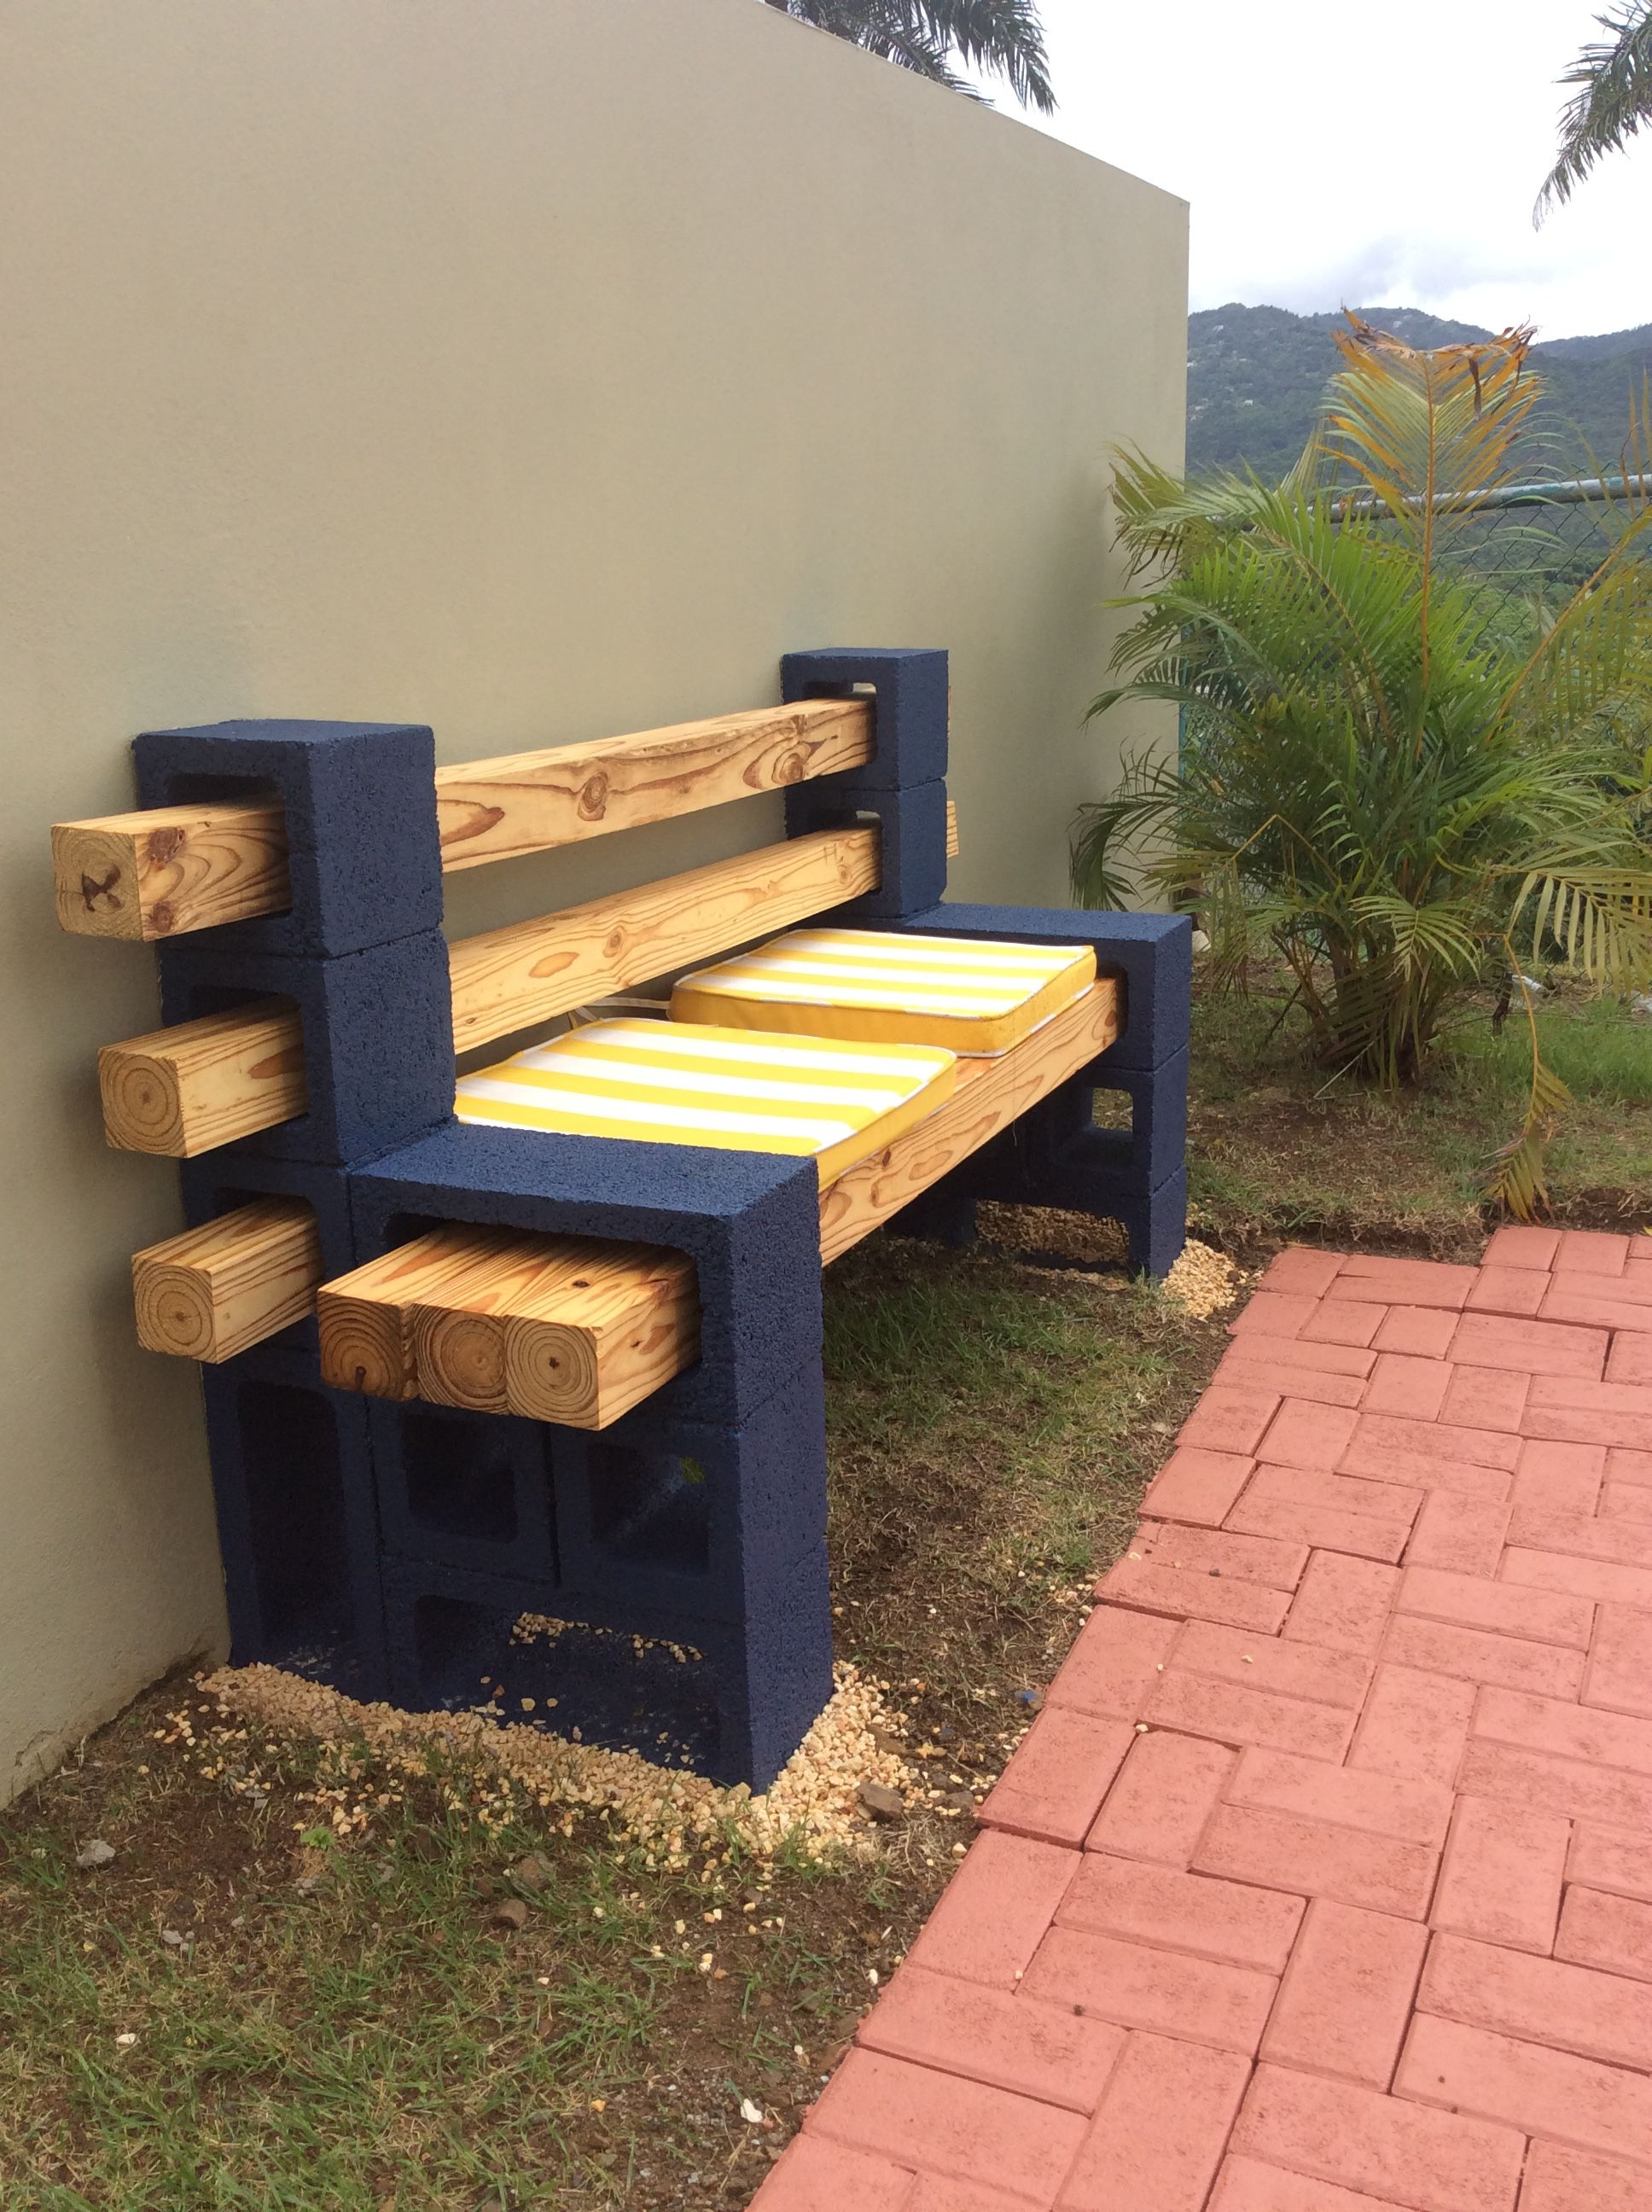 Astounding Concrete Block And Wood Bench In 2019 Diy Concrete Patio Evergreenethics Interior Chair Design Evergreenethicsorg